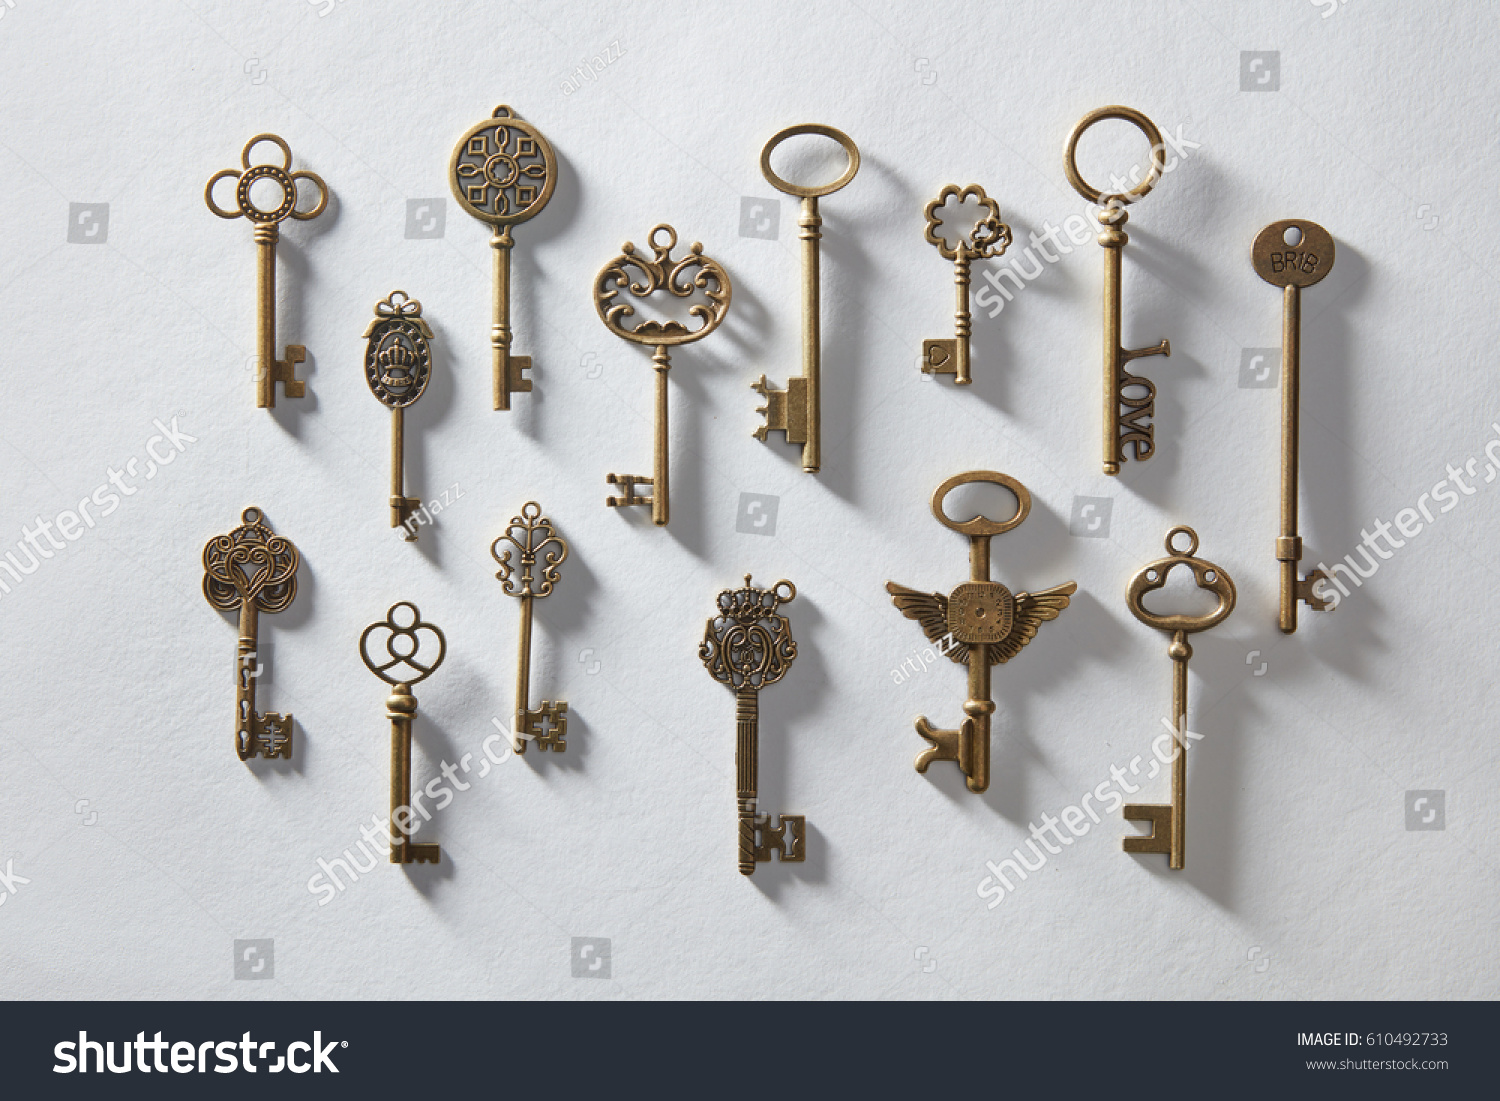 Vintage or antique door keys on white paper - Vintage Antique Door Keys On White Stock Photo 610492733